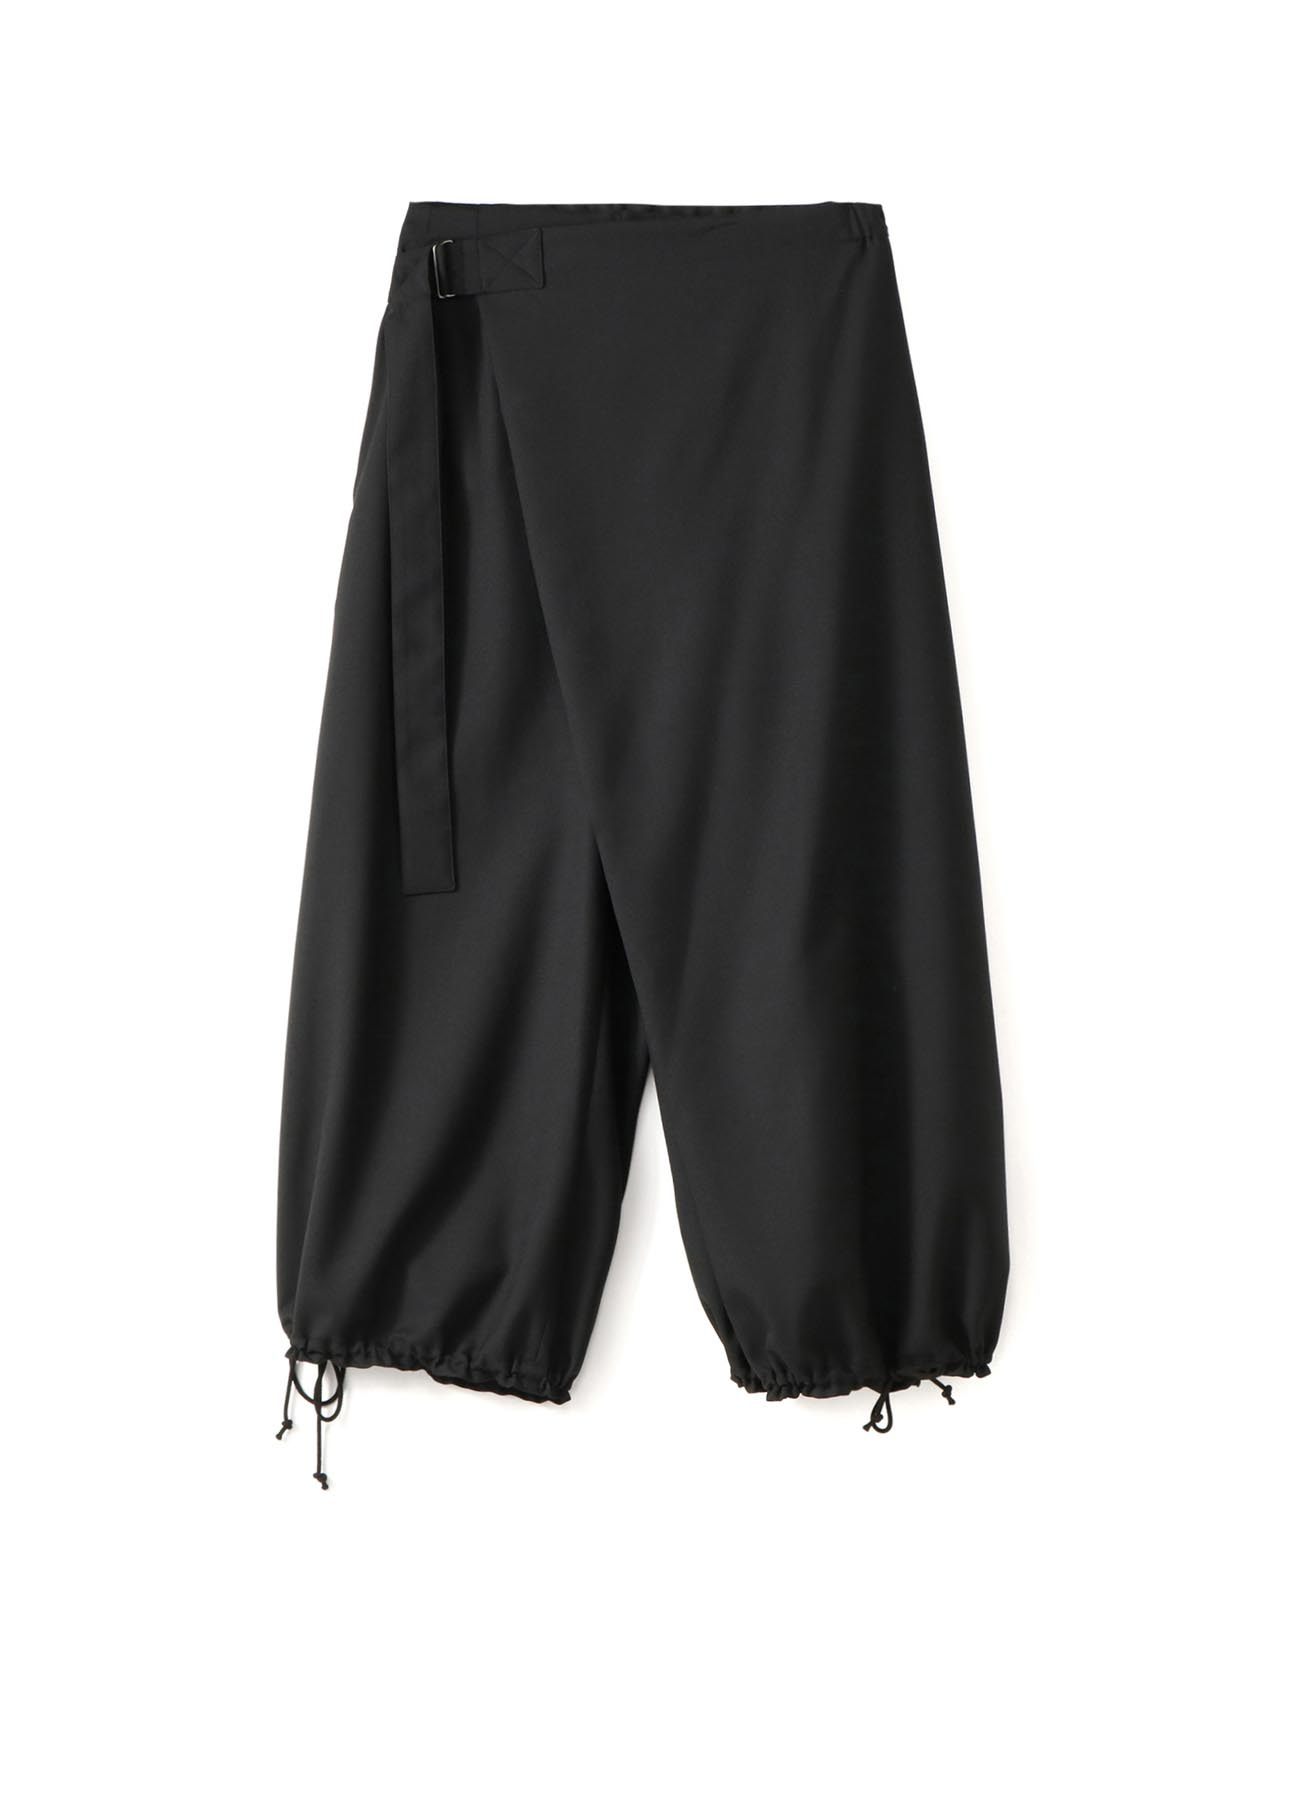 T/W Gabardine Thai style Balloon Pants